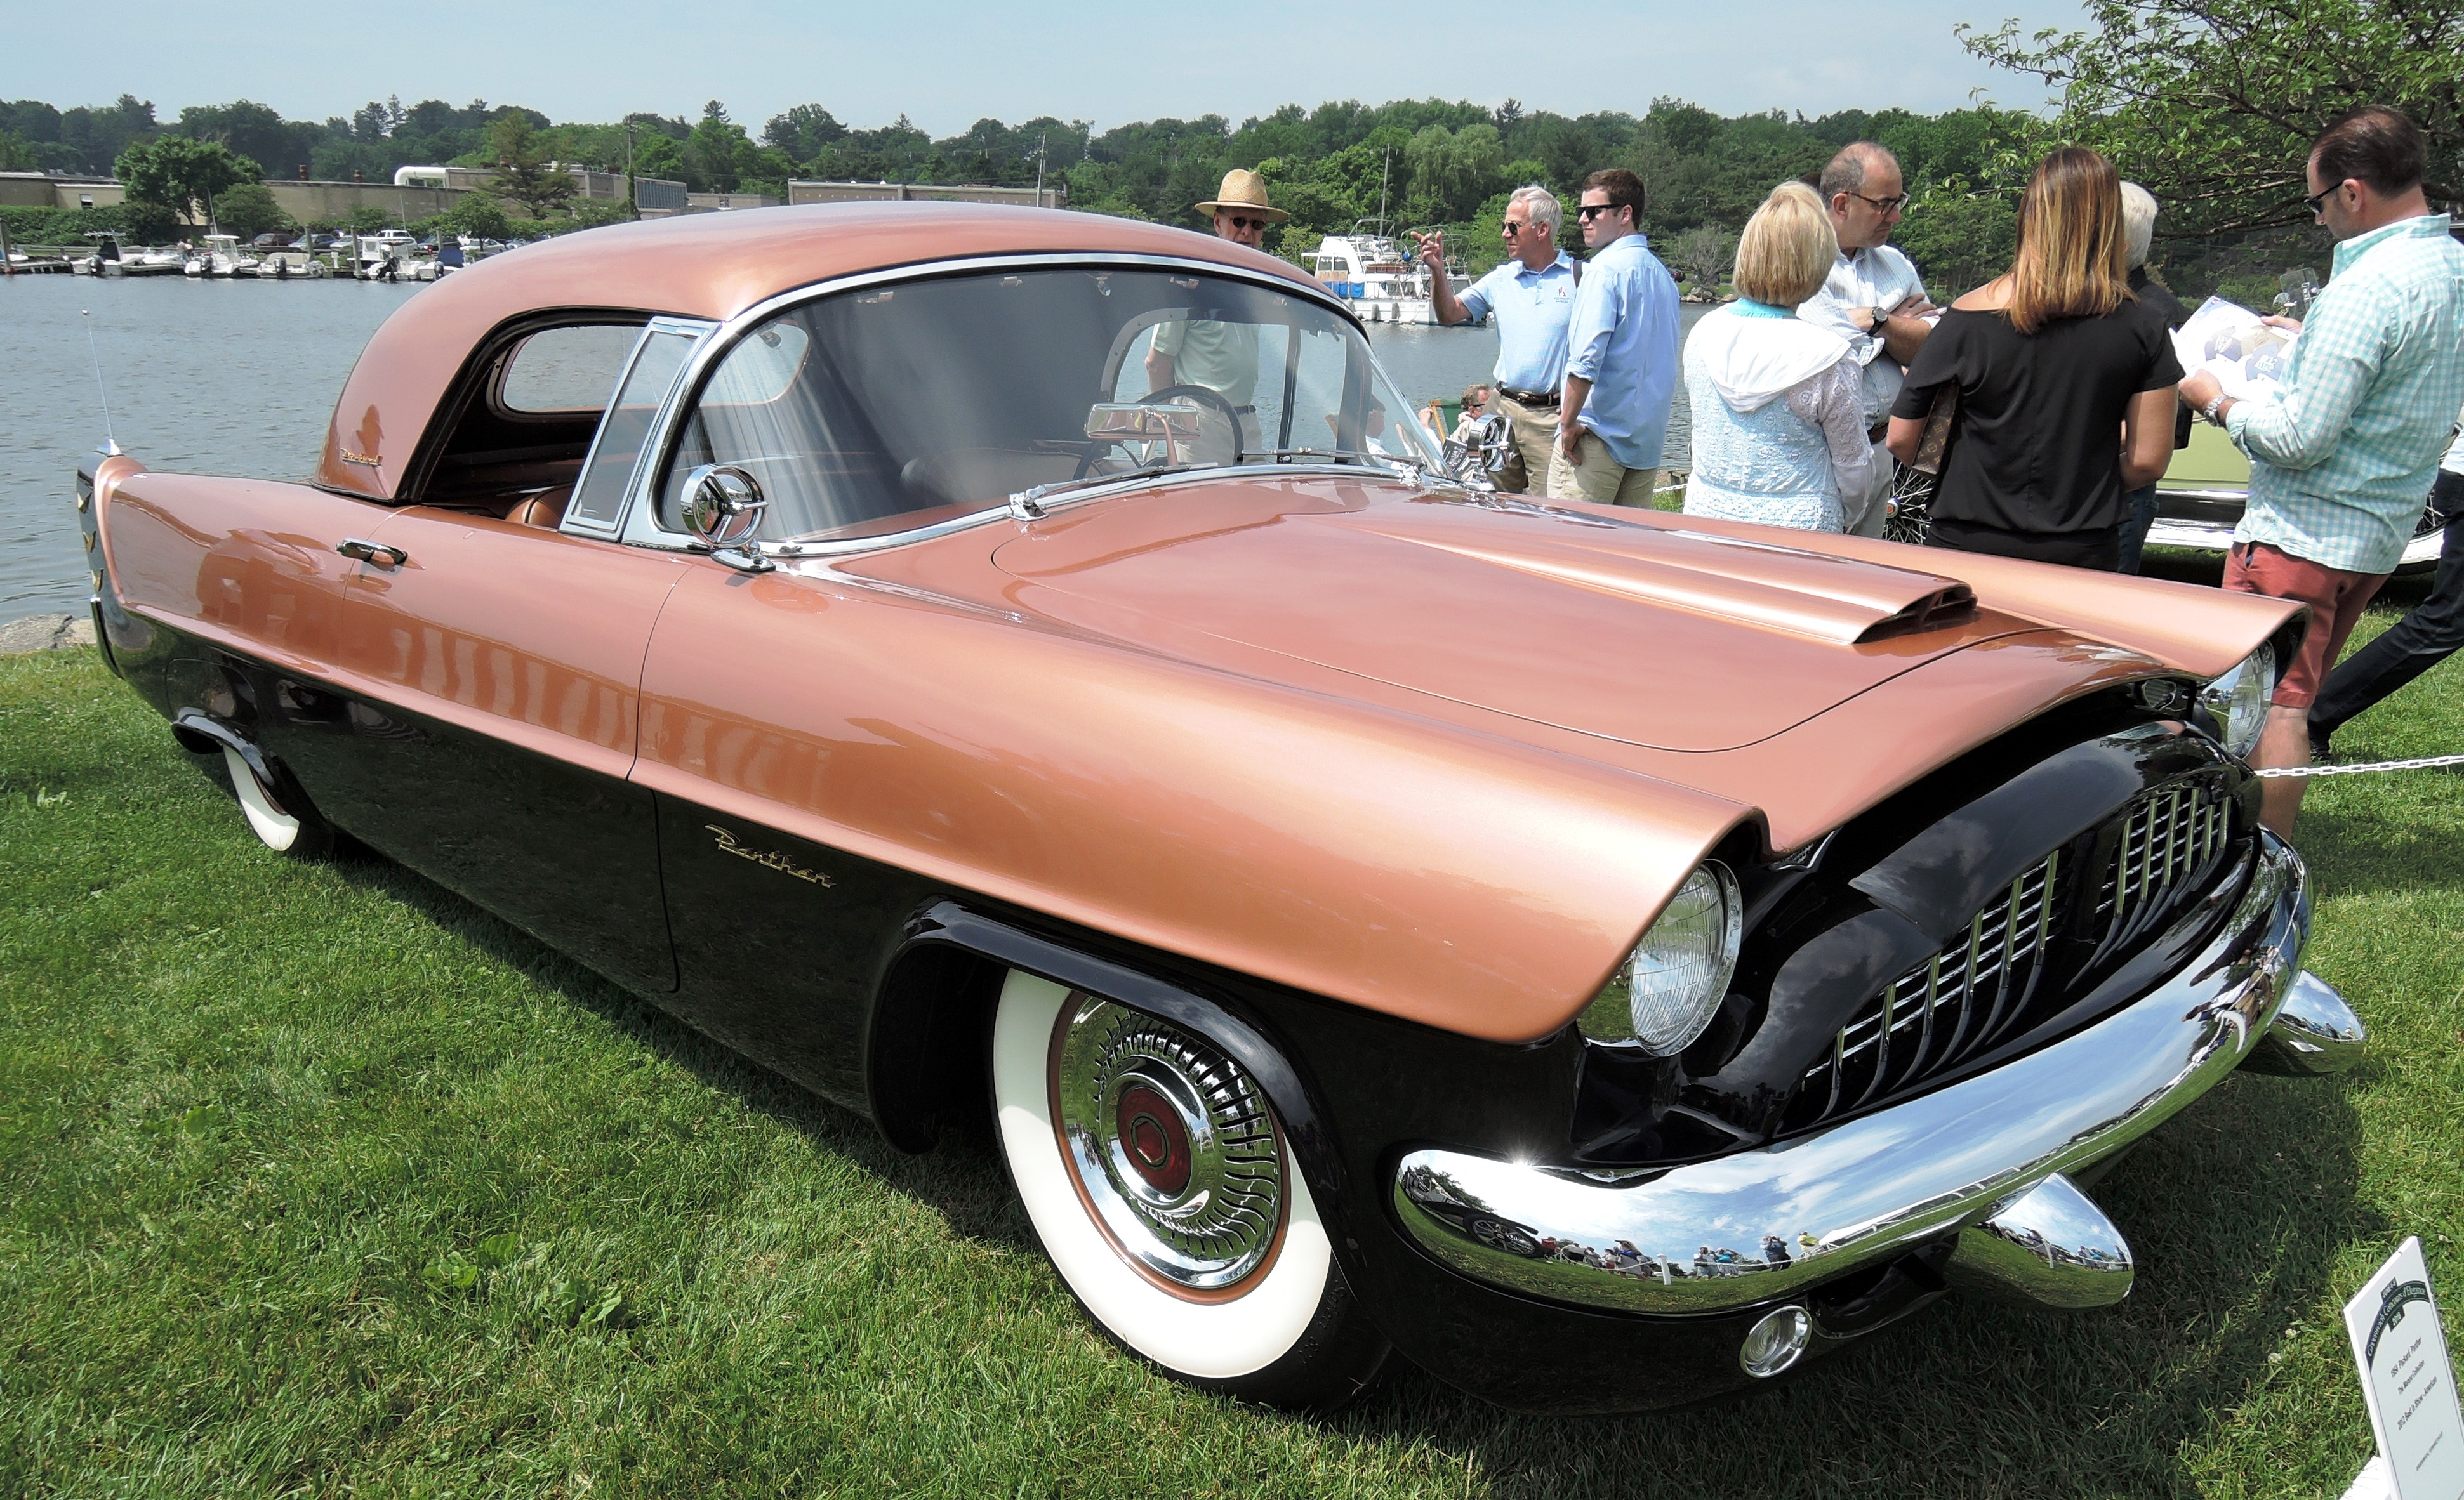 sherbert 1954 Packard Panther - greenwich concours